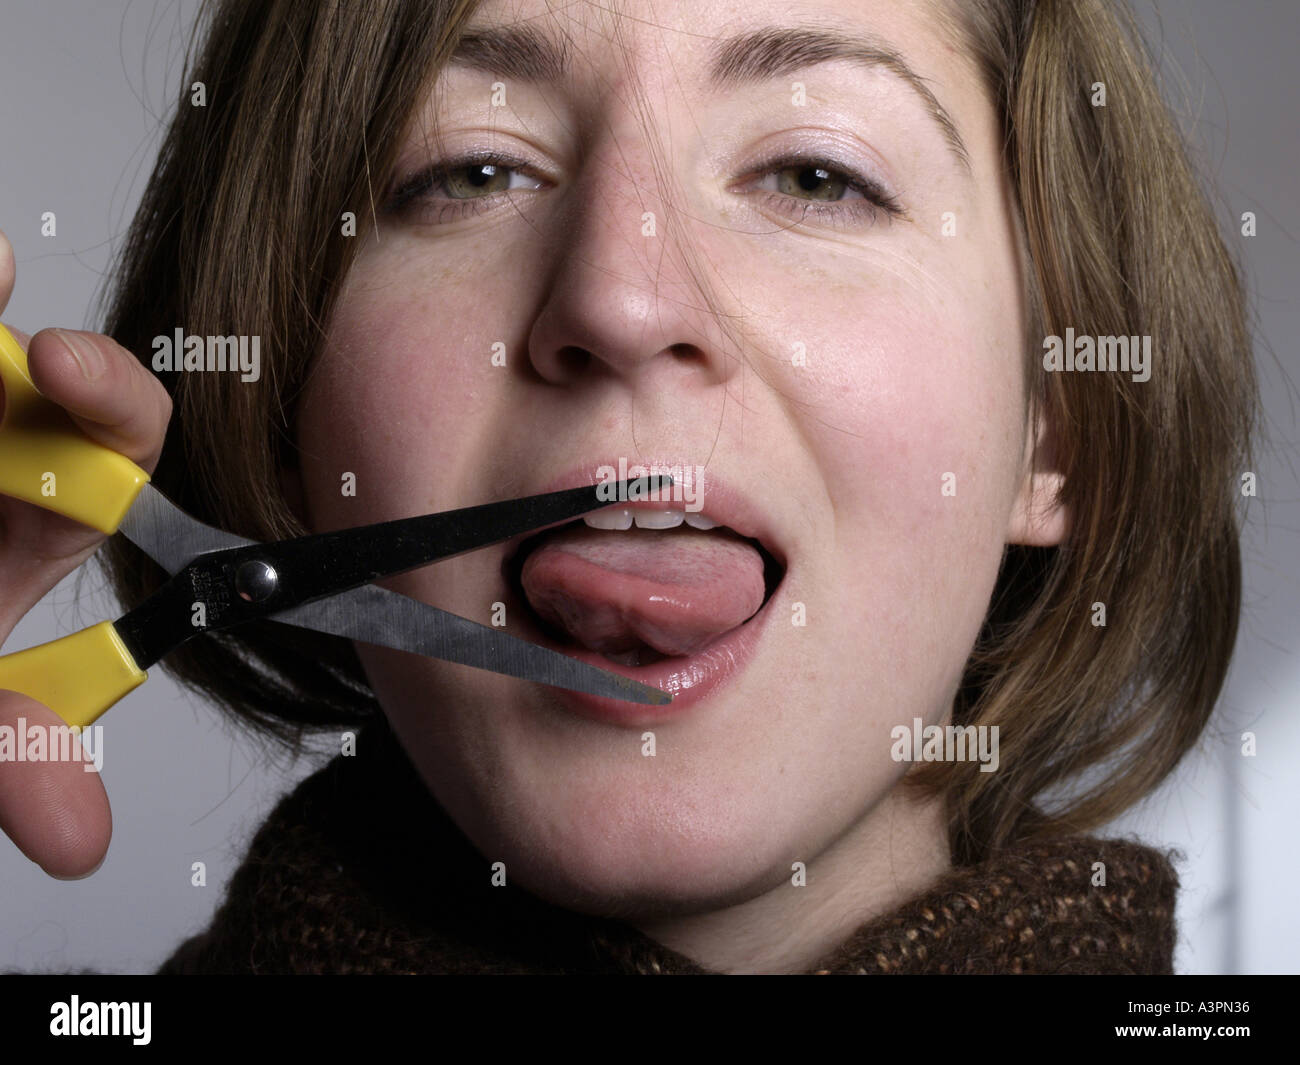 how to fix mouth cuts